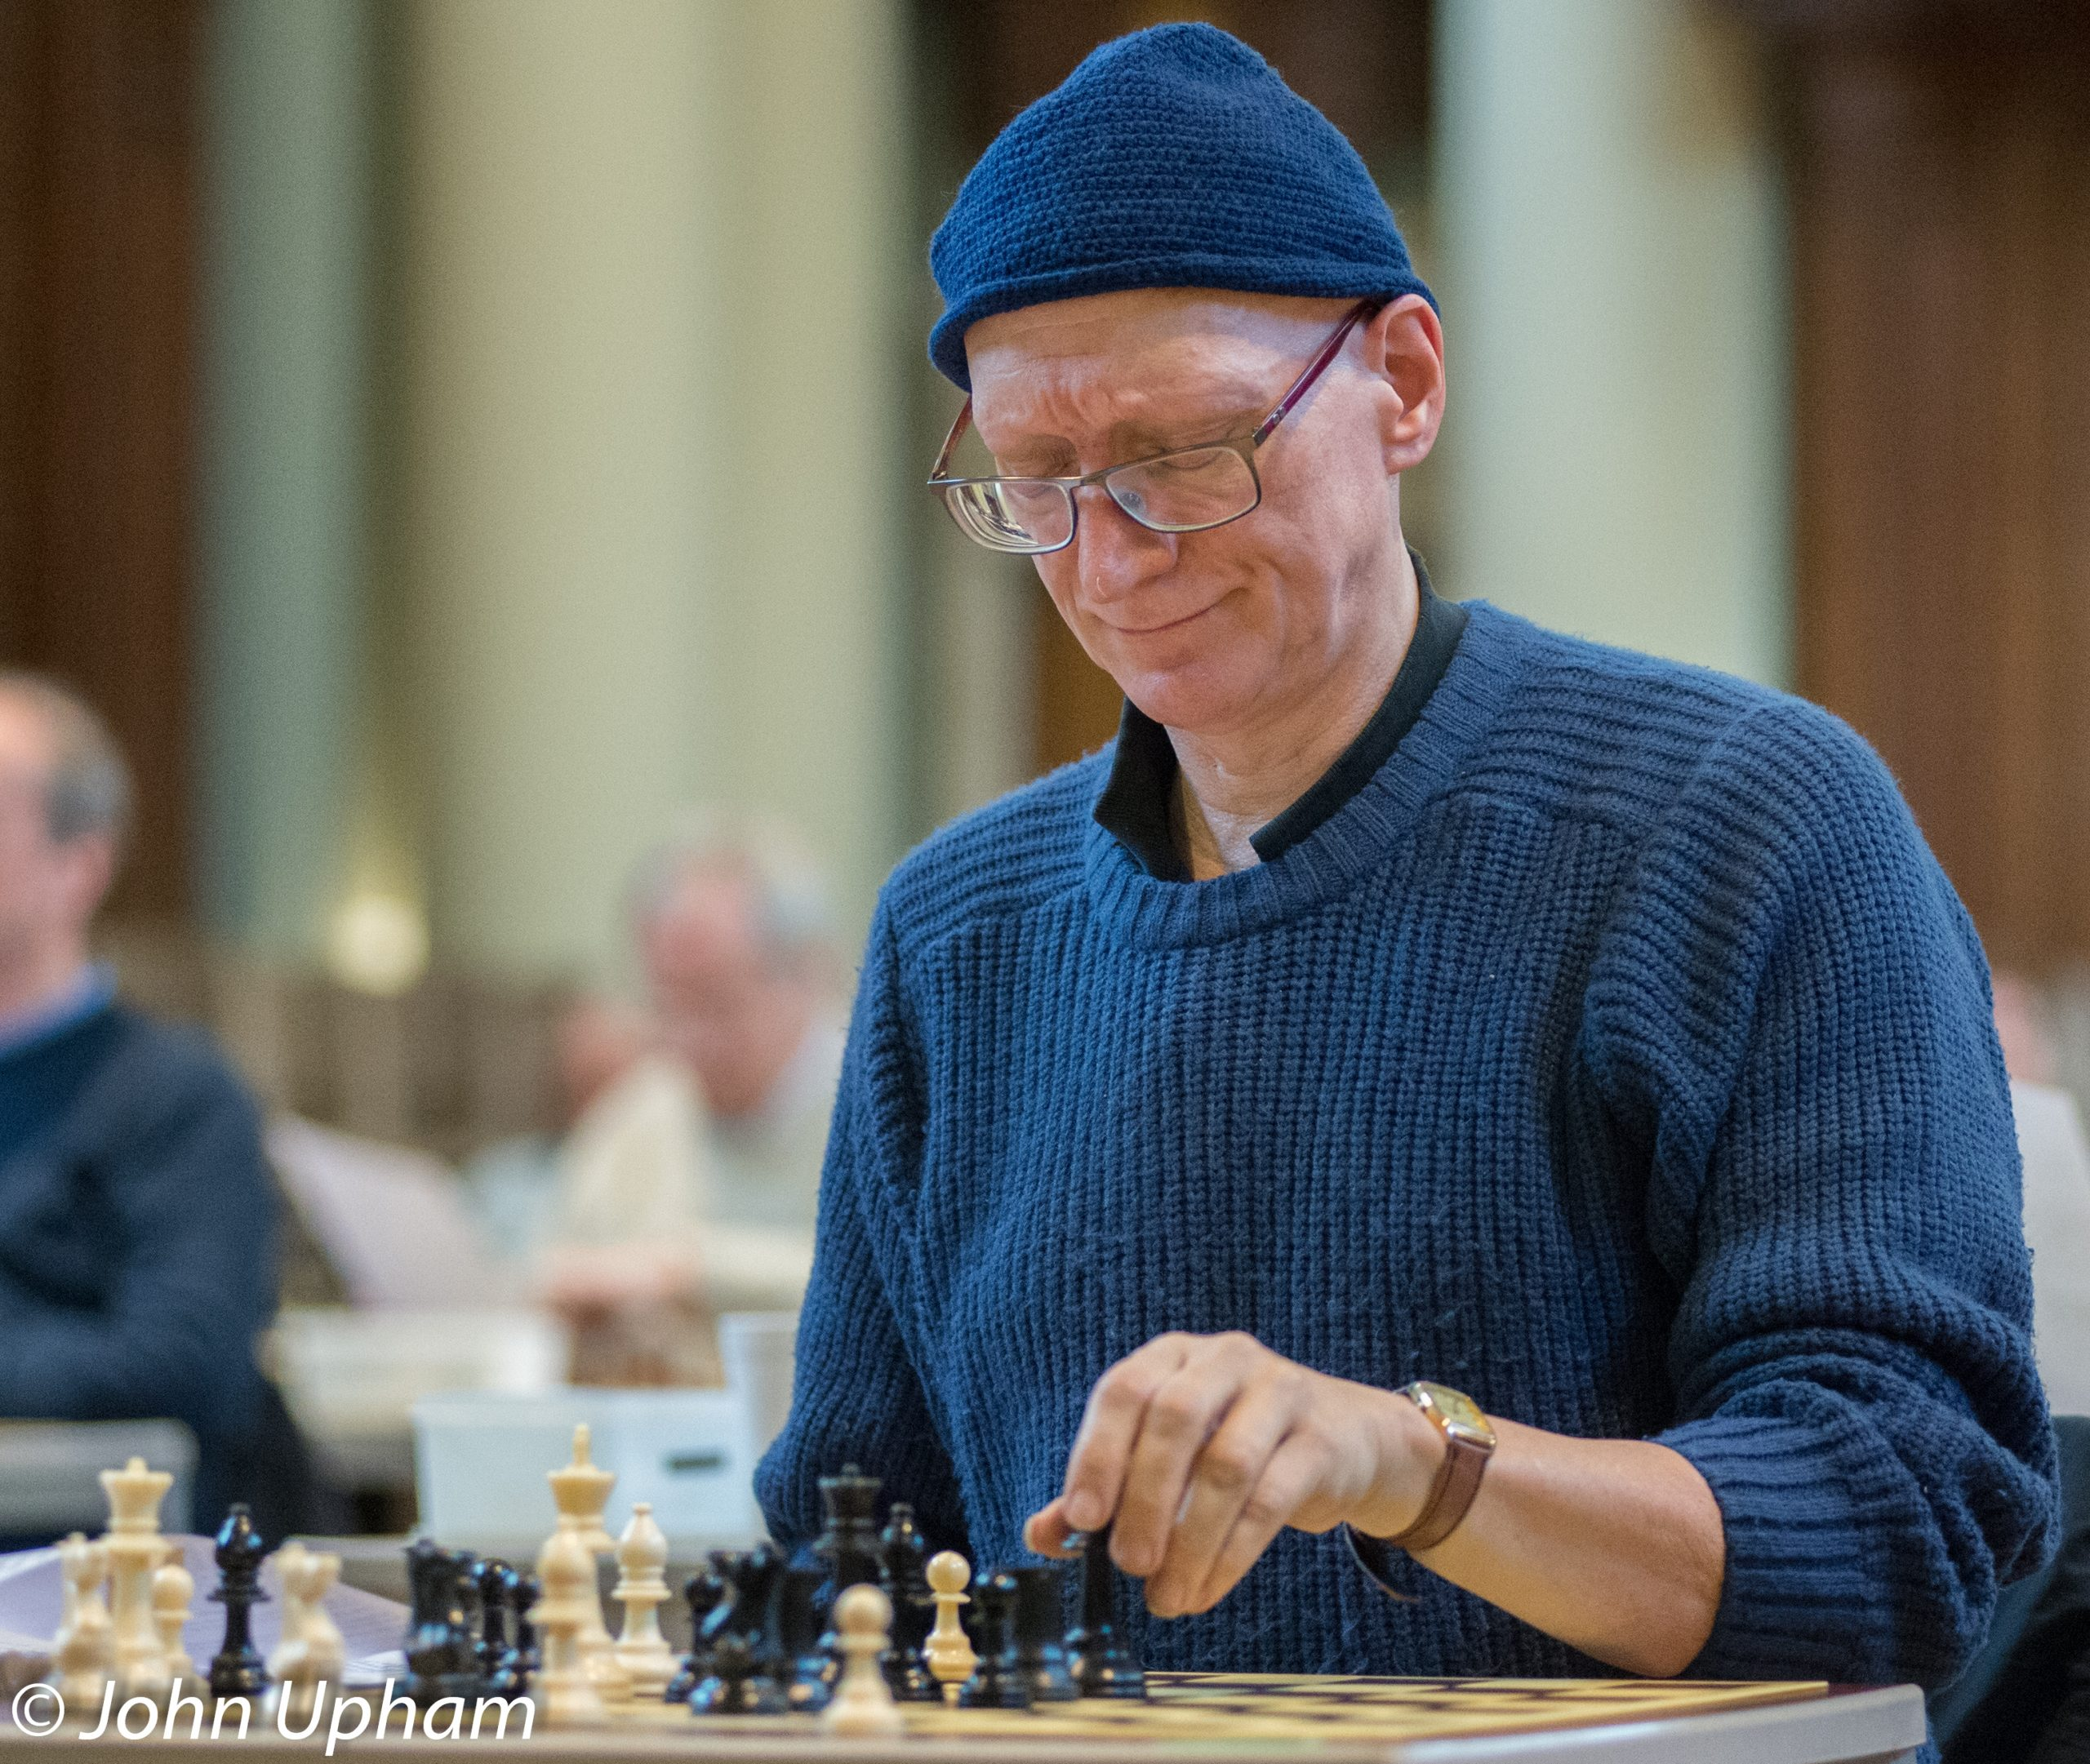 Jonathan Mestel at the 2014 Winton Capital British Solving Championships at Eton College, Courtesy of John Upham Photography